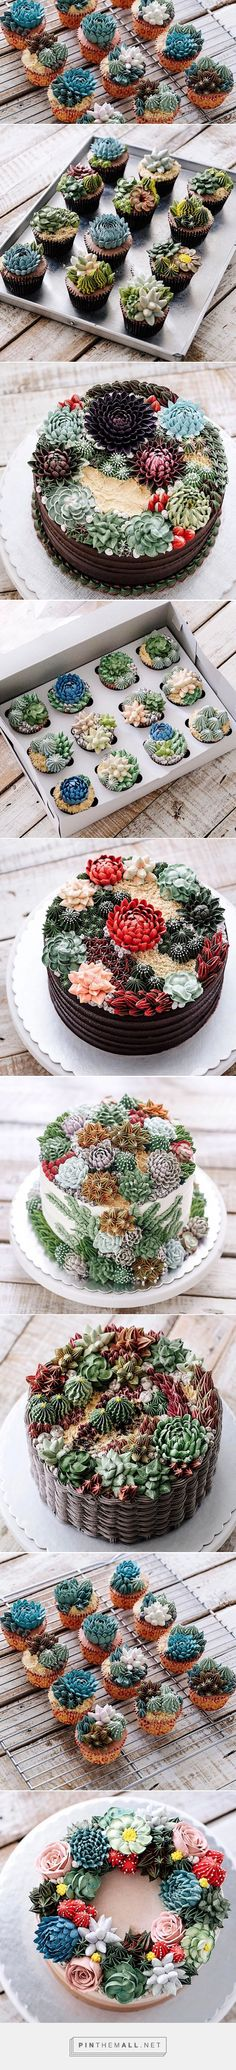 Succulent Cakes By Ivenoven